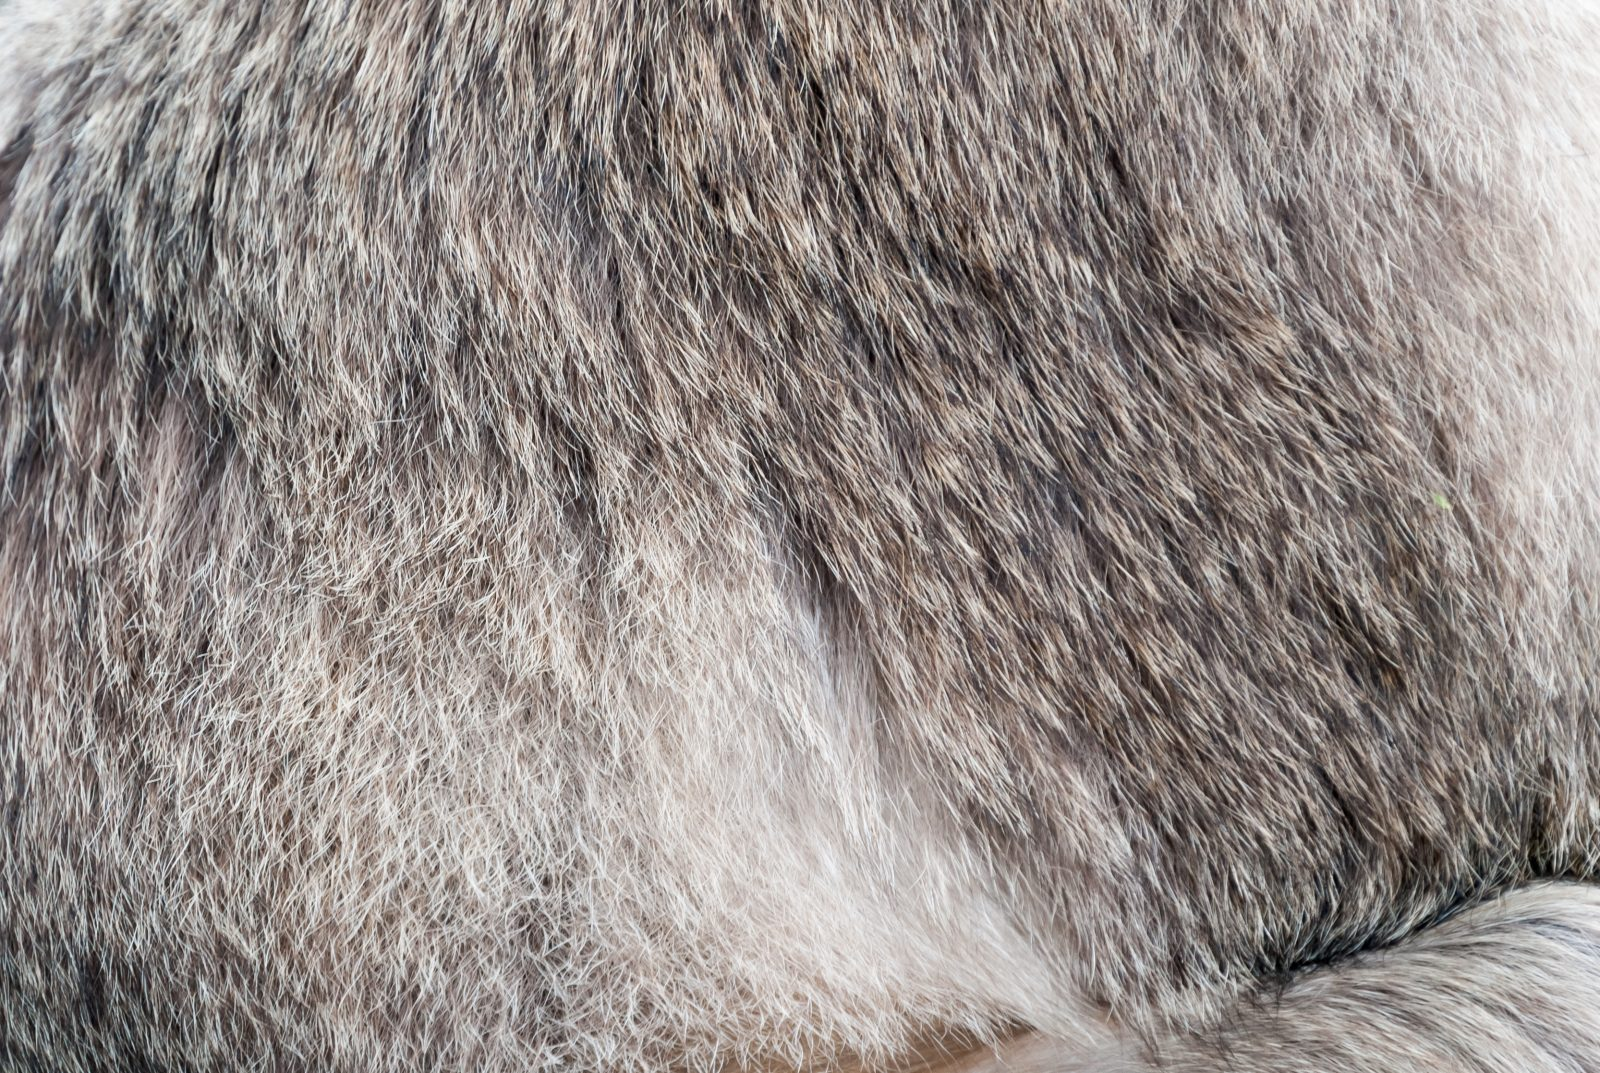 Raccoon fur close-up texture